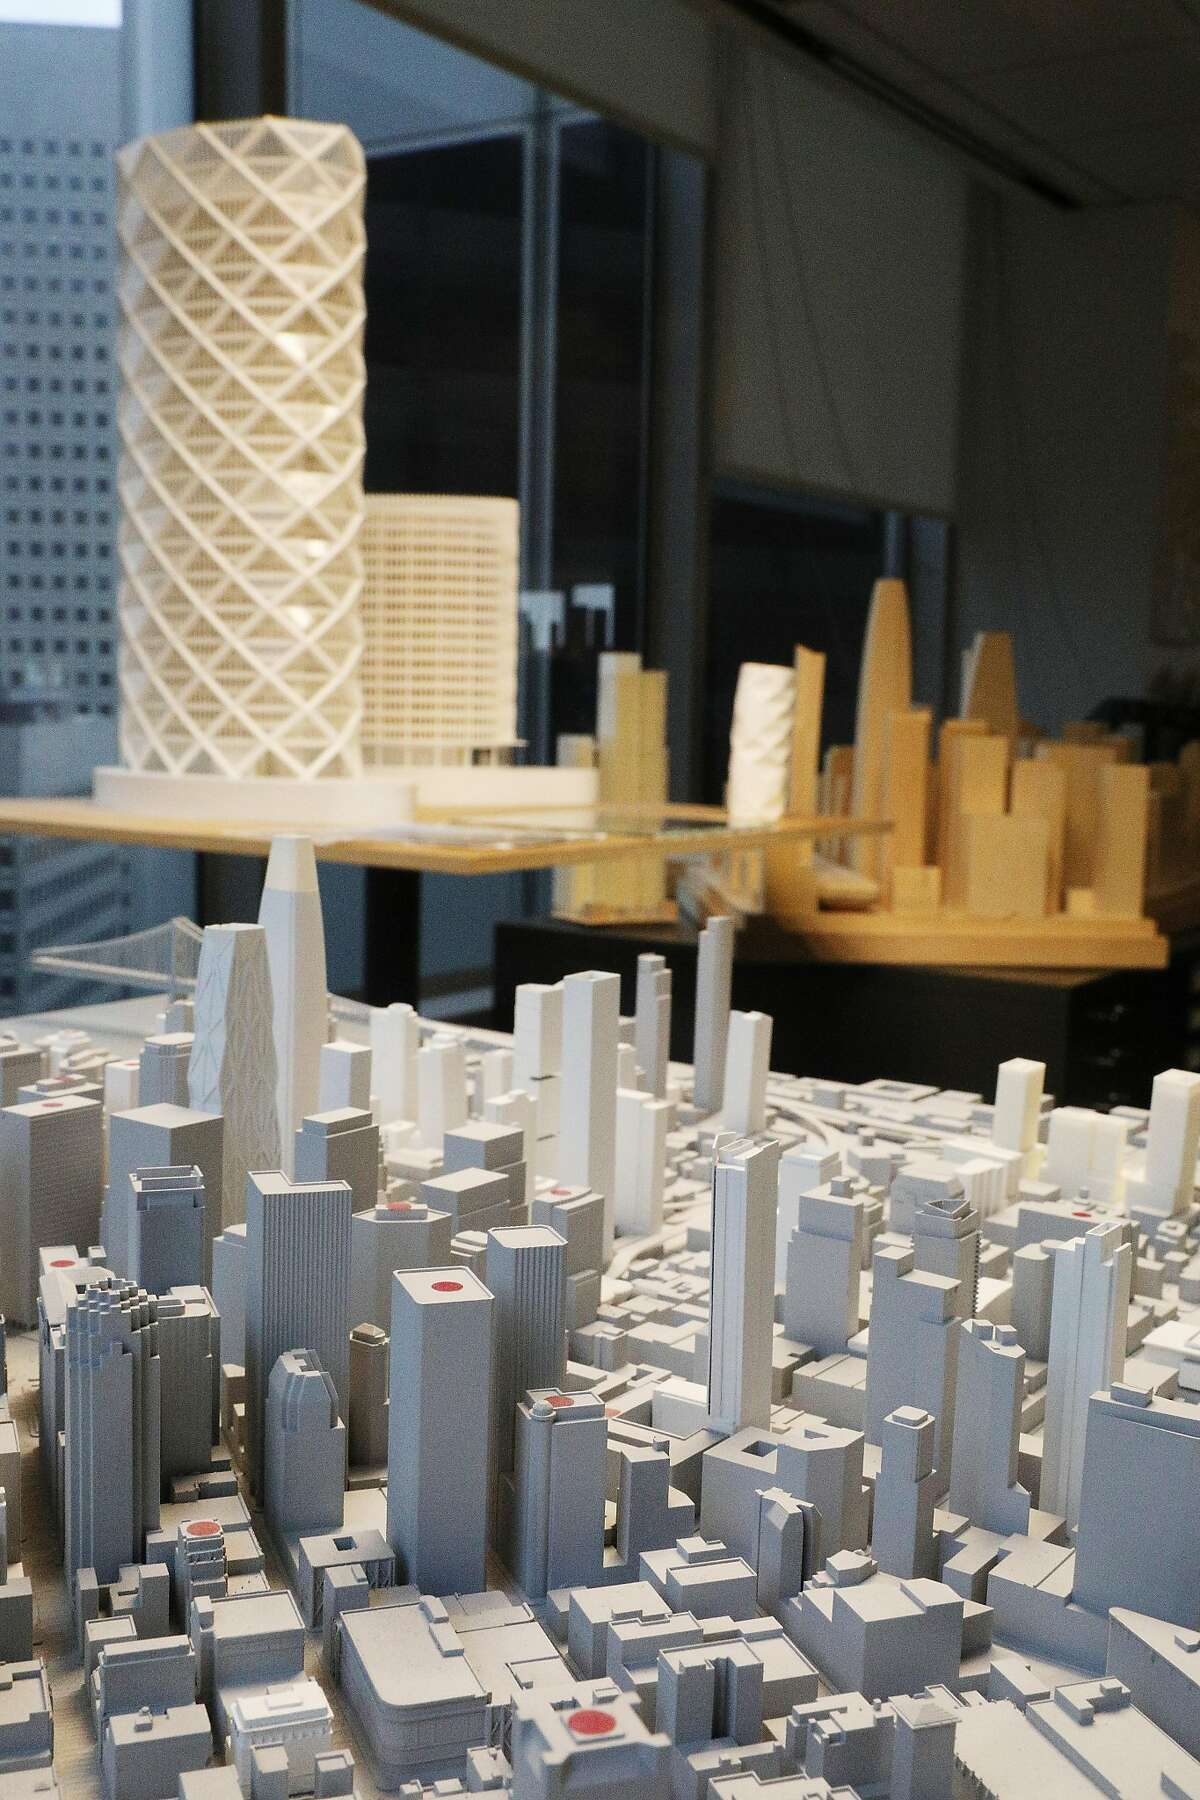 Presentation and study models are seen displayed at Skidmore, Owings & Merrill on Wednesday, March 6, 2019 in San Francisco, Calif.